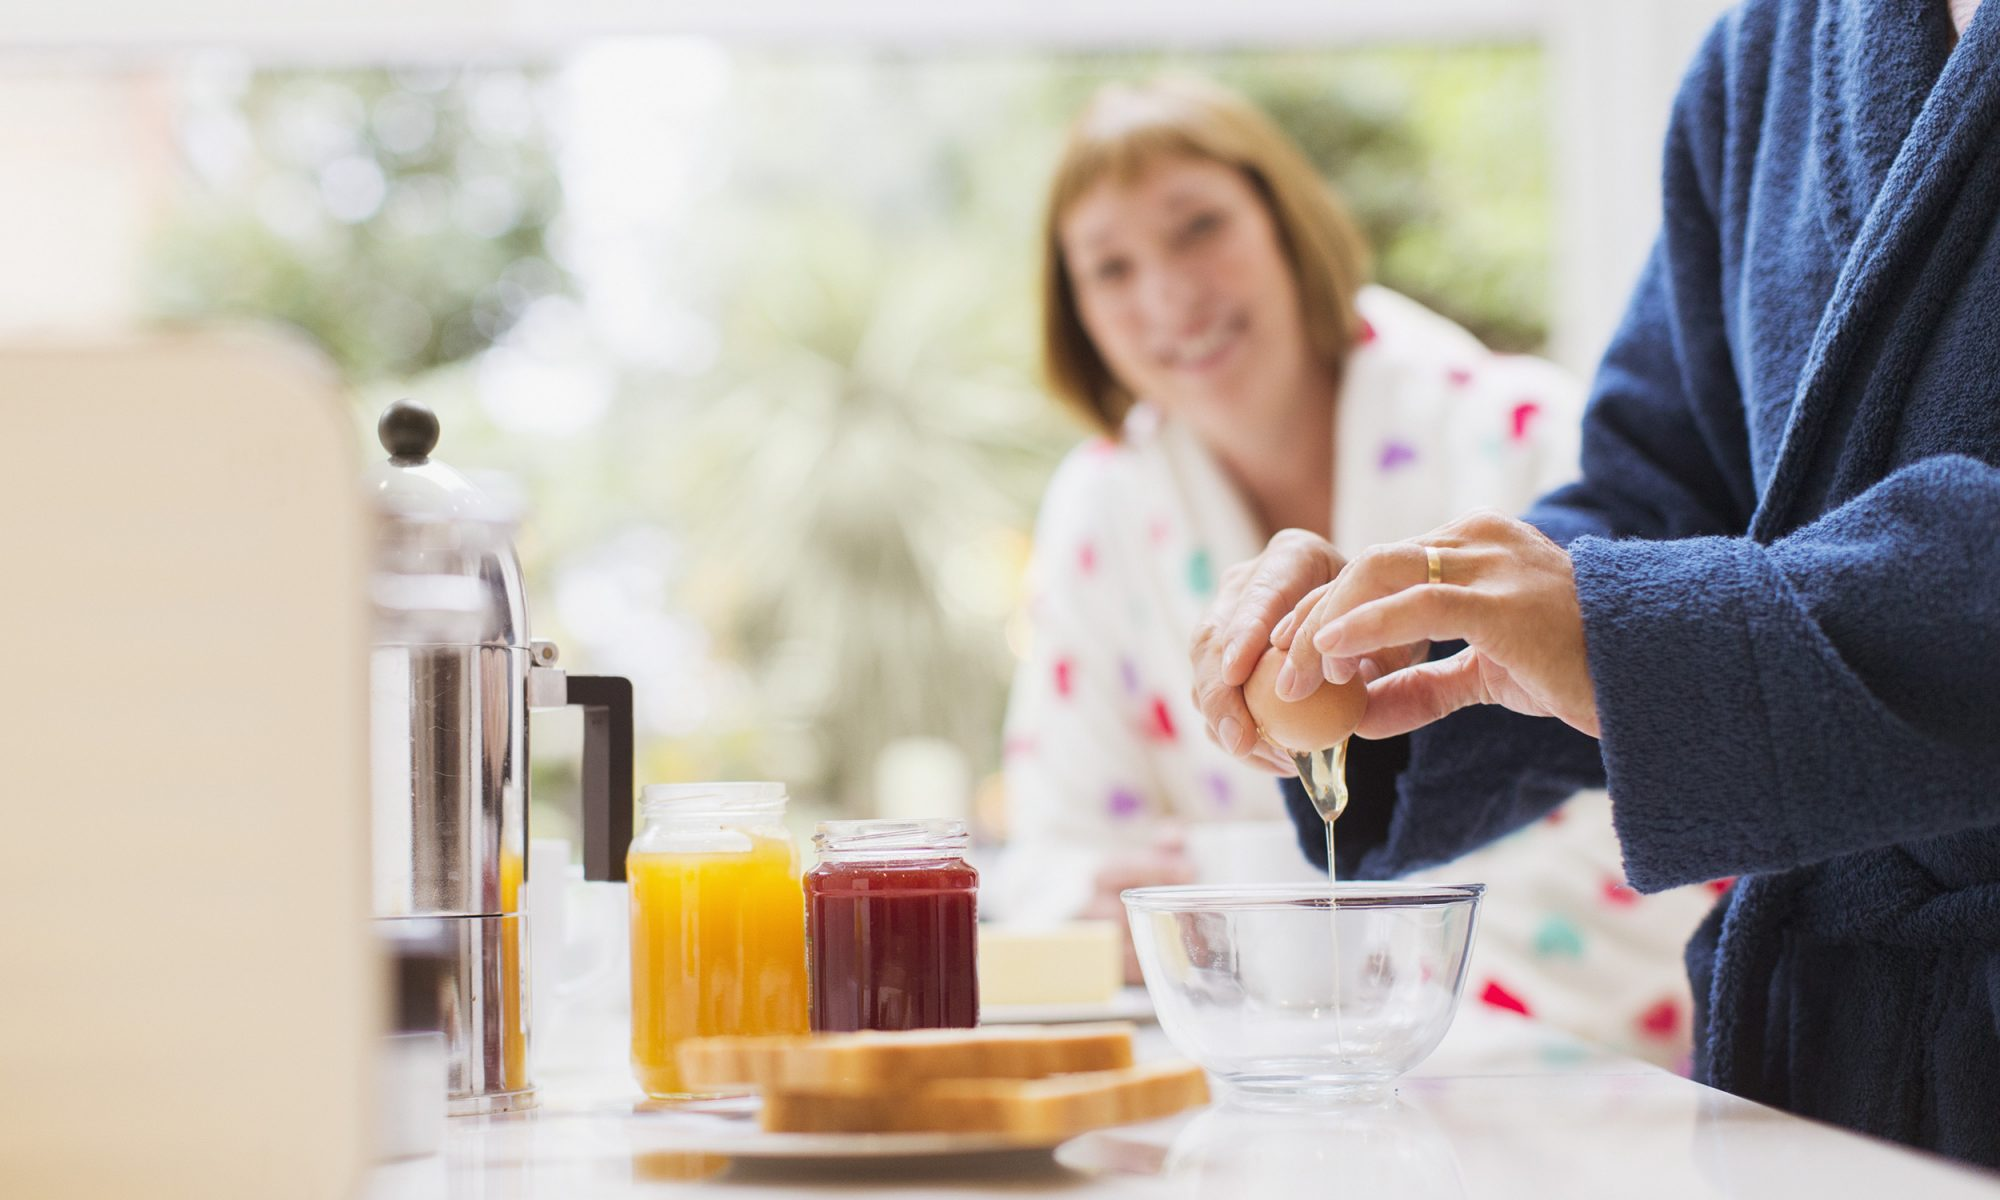 EC: A Millennial's Guide to Making Breakfast for Your Parents